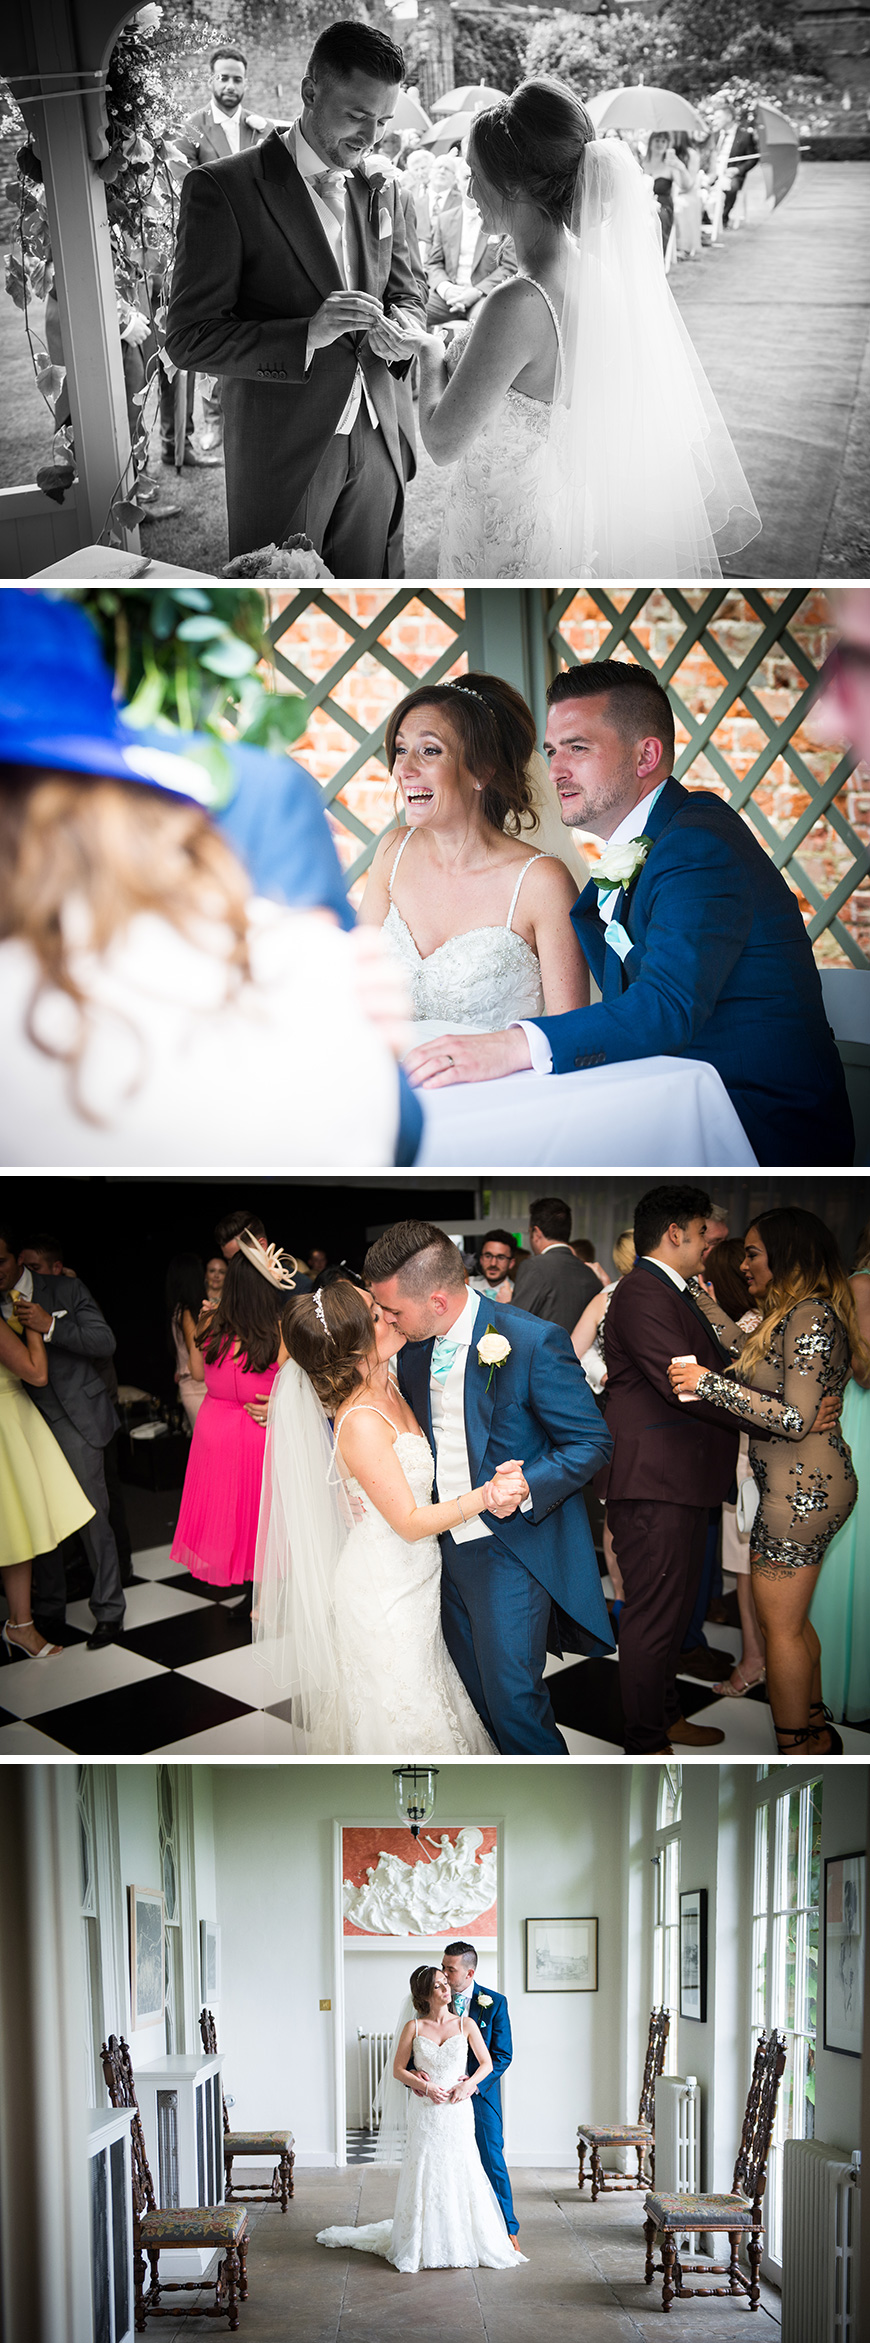 Real Wedding - Madeline and Martyn's Al Fresco Wedding At Braxted Park | CHWV